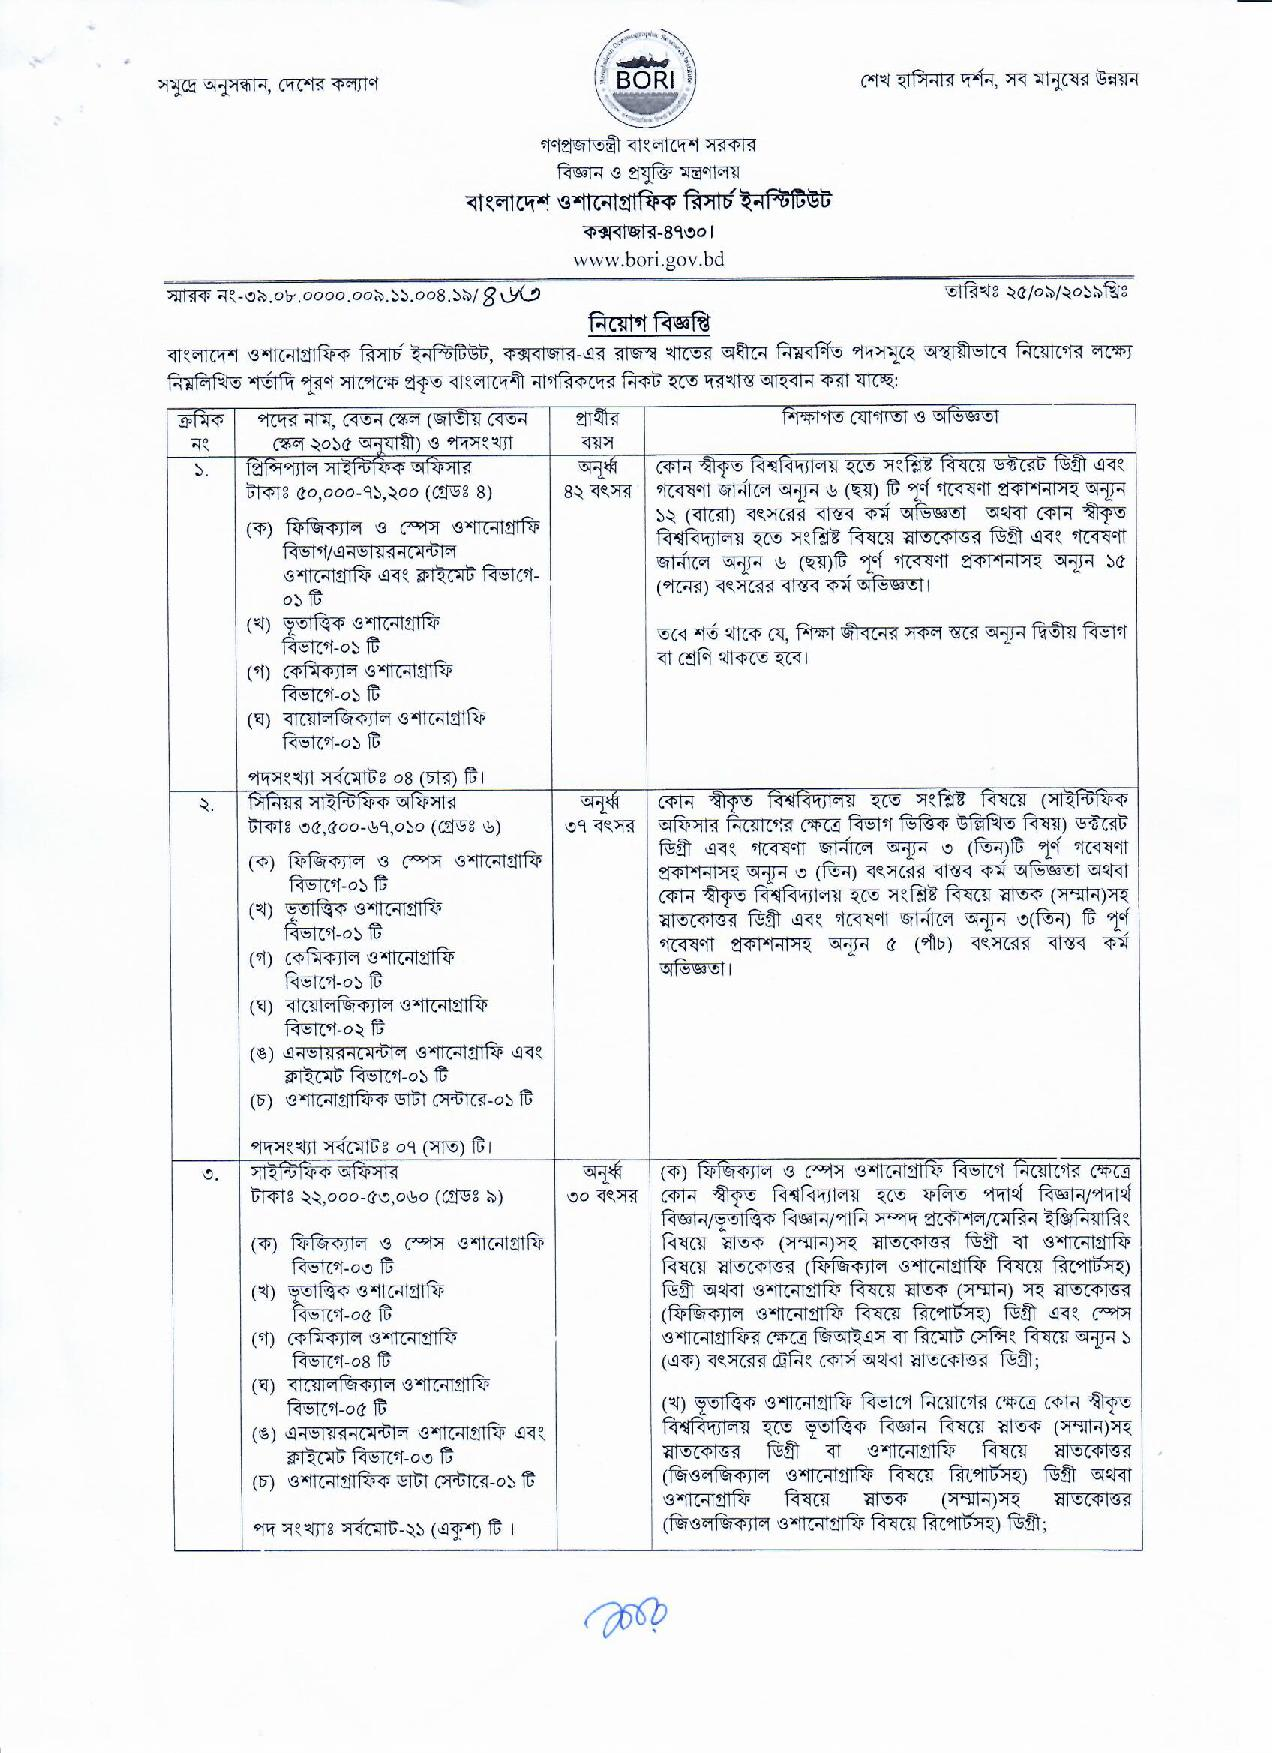 BORI Job Circular Apply 2019